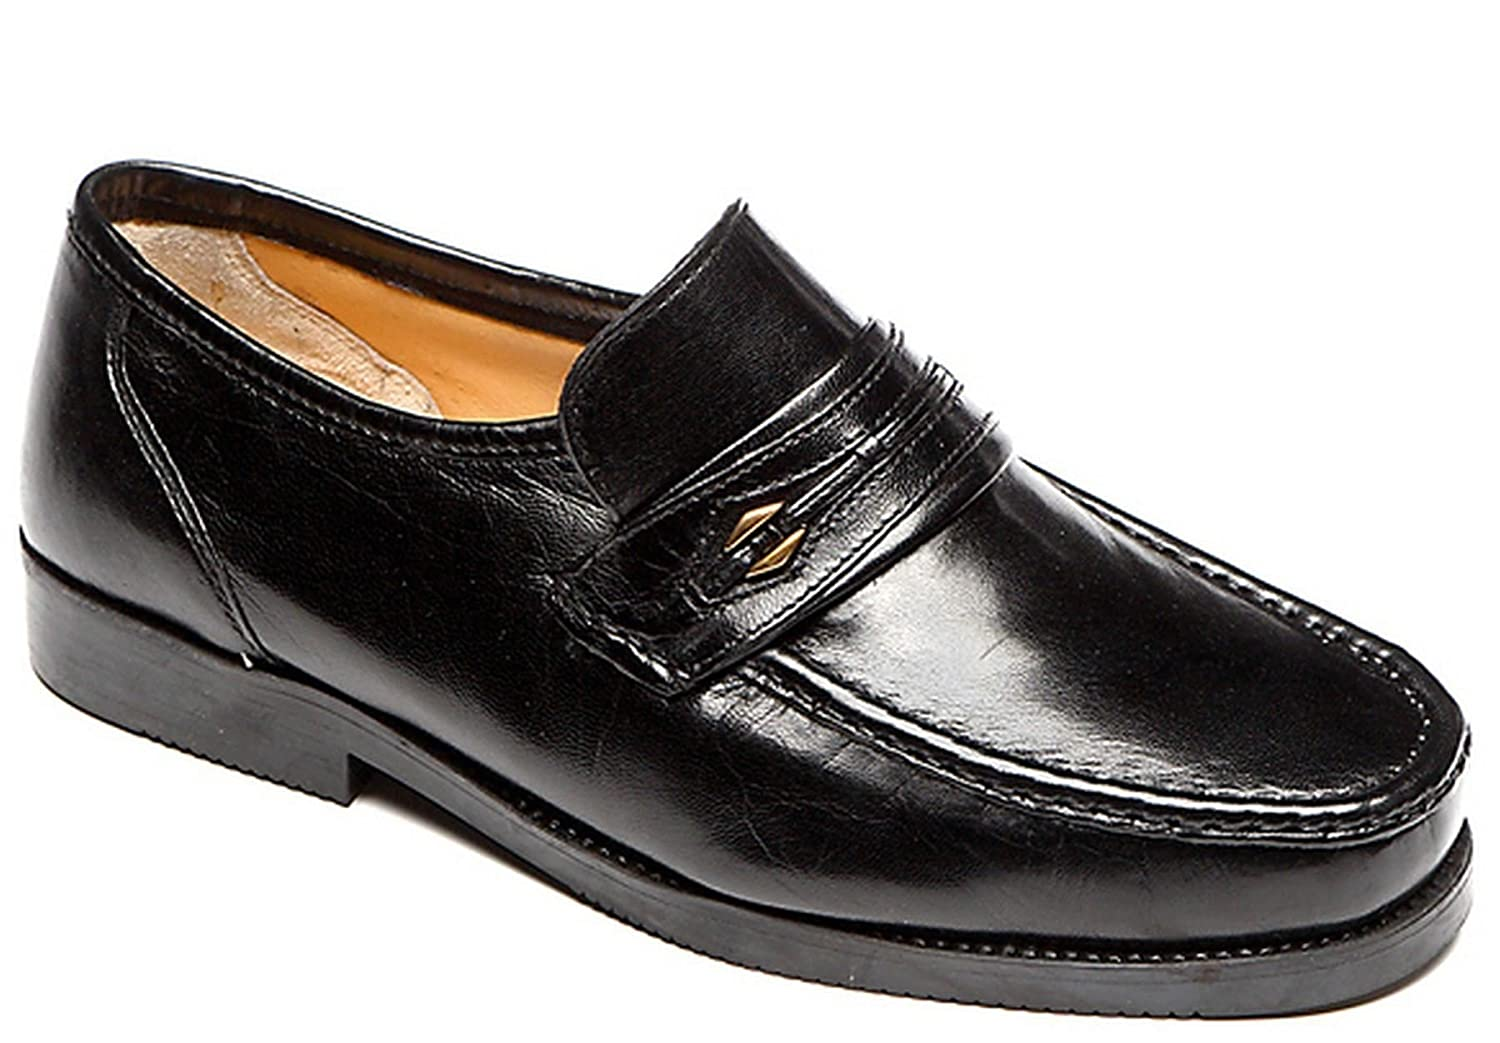 Mens Leather Wide Fit Moccasin Slip On Dress Formal Shoes Size 6-12:  Amazon.co.uk: Shoes & Bags